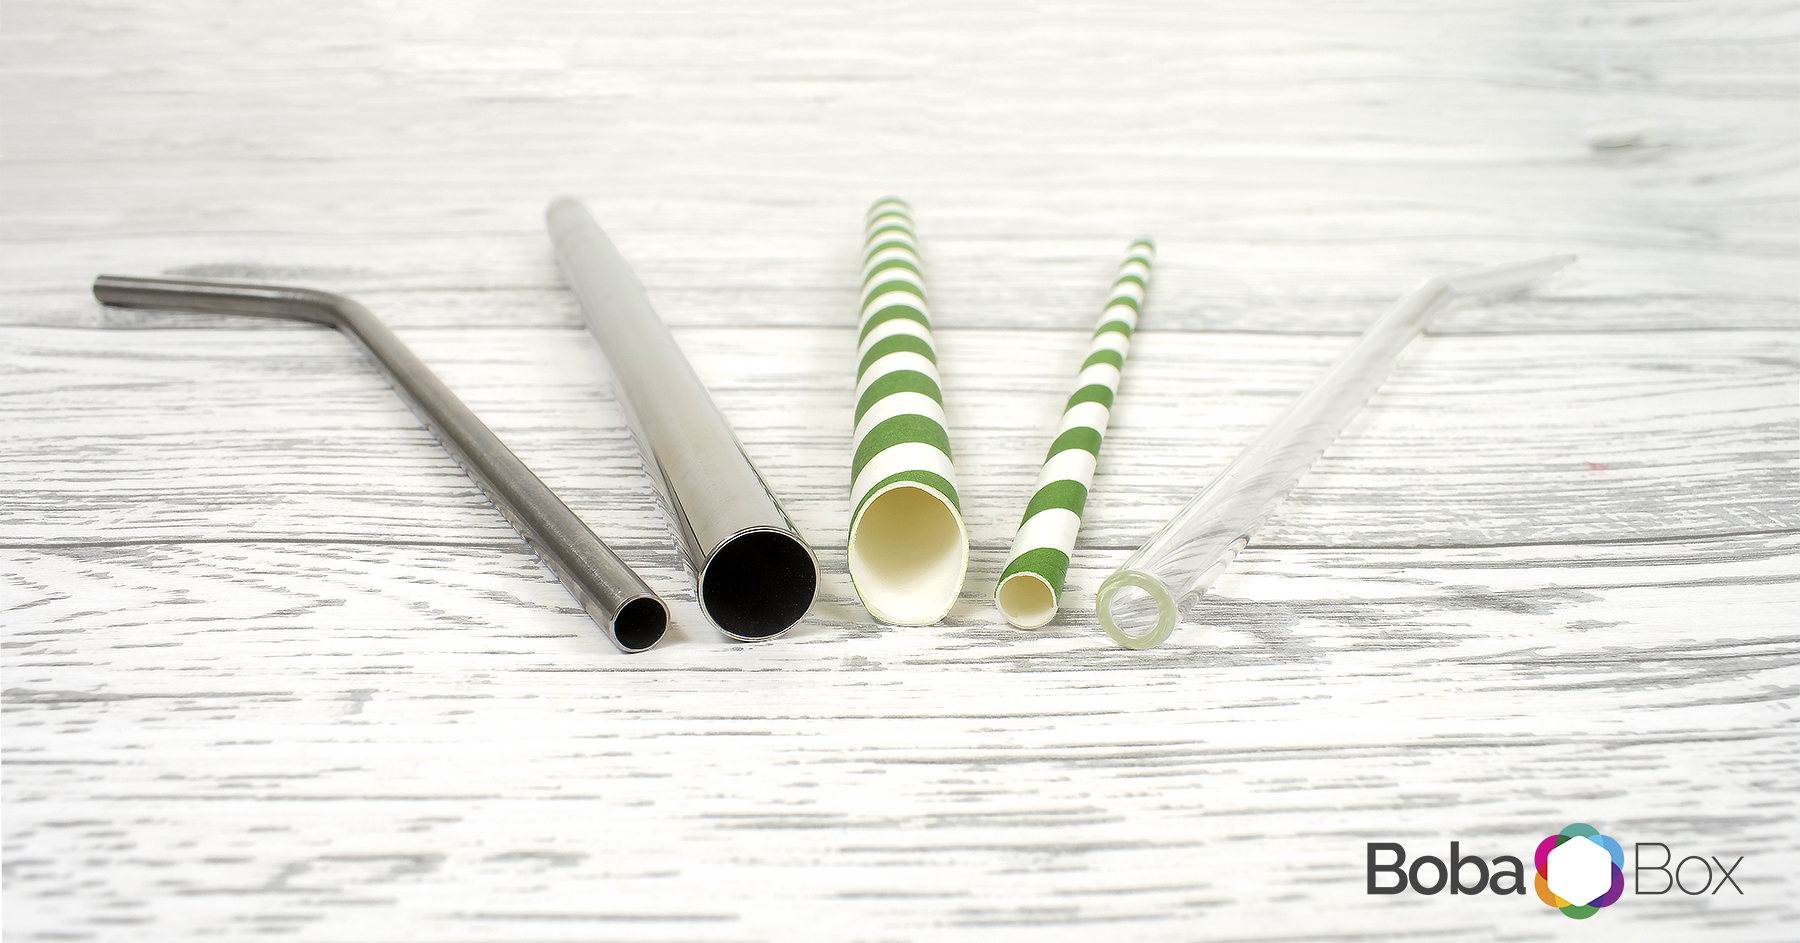 eco friendly sustainable reusable bubble tea glass paper stainless steel straws